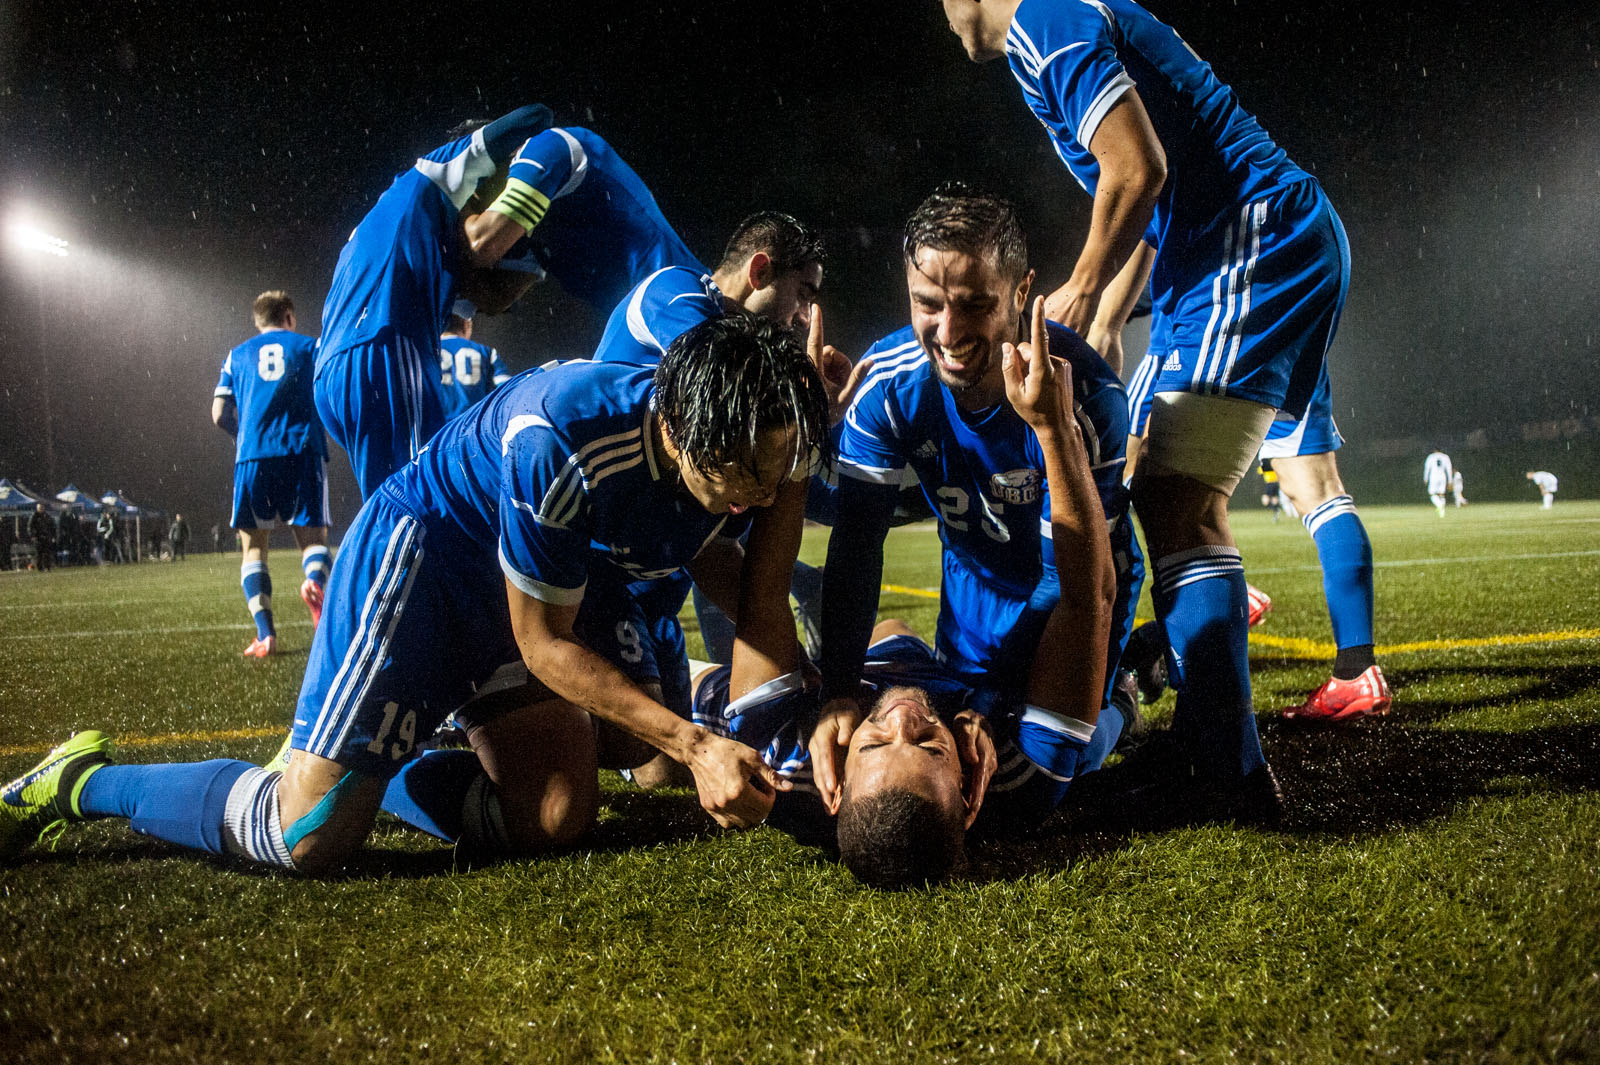 The team celebrates after scoring in the Canada West finals.